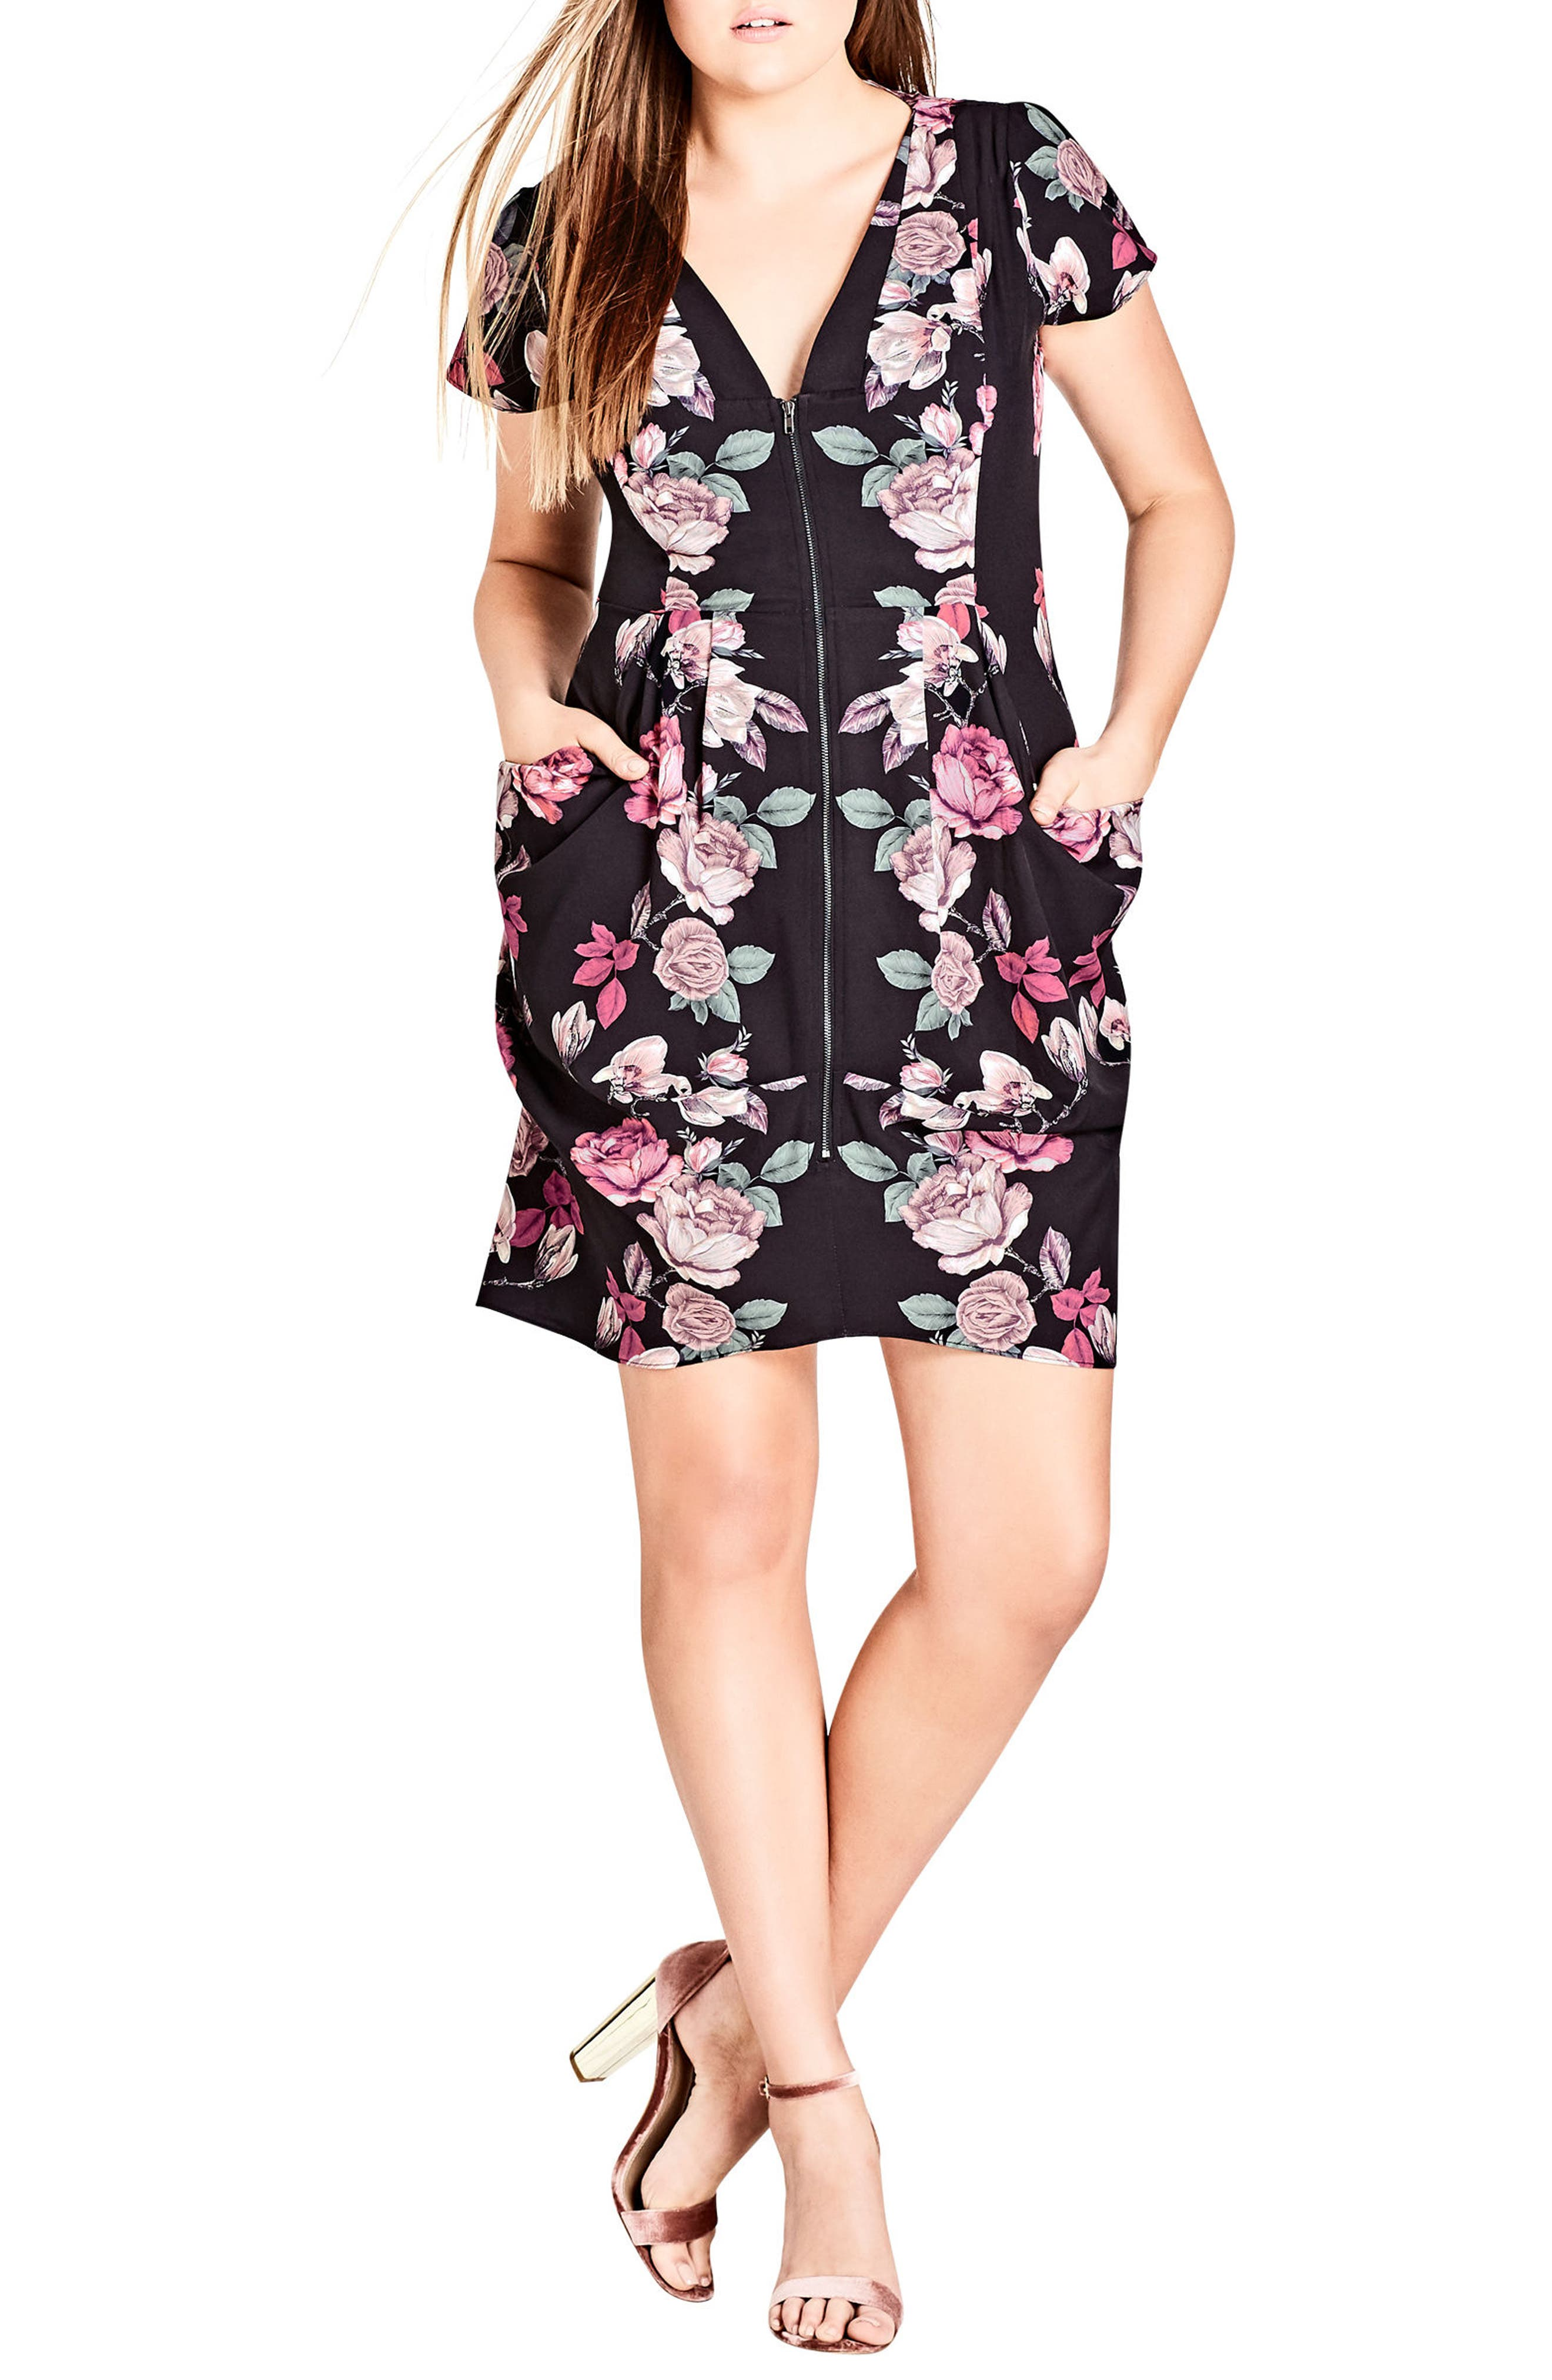 Alternate Image 1 Selected - City Chic Mirror Mirror Floral Tunic Dress (Plus Size)